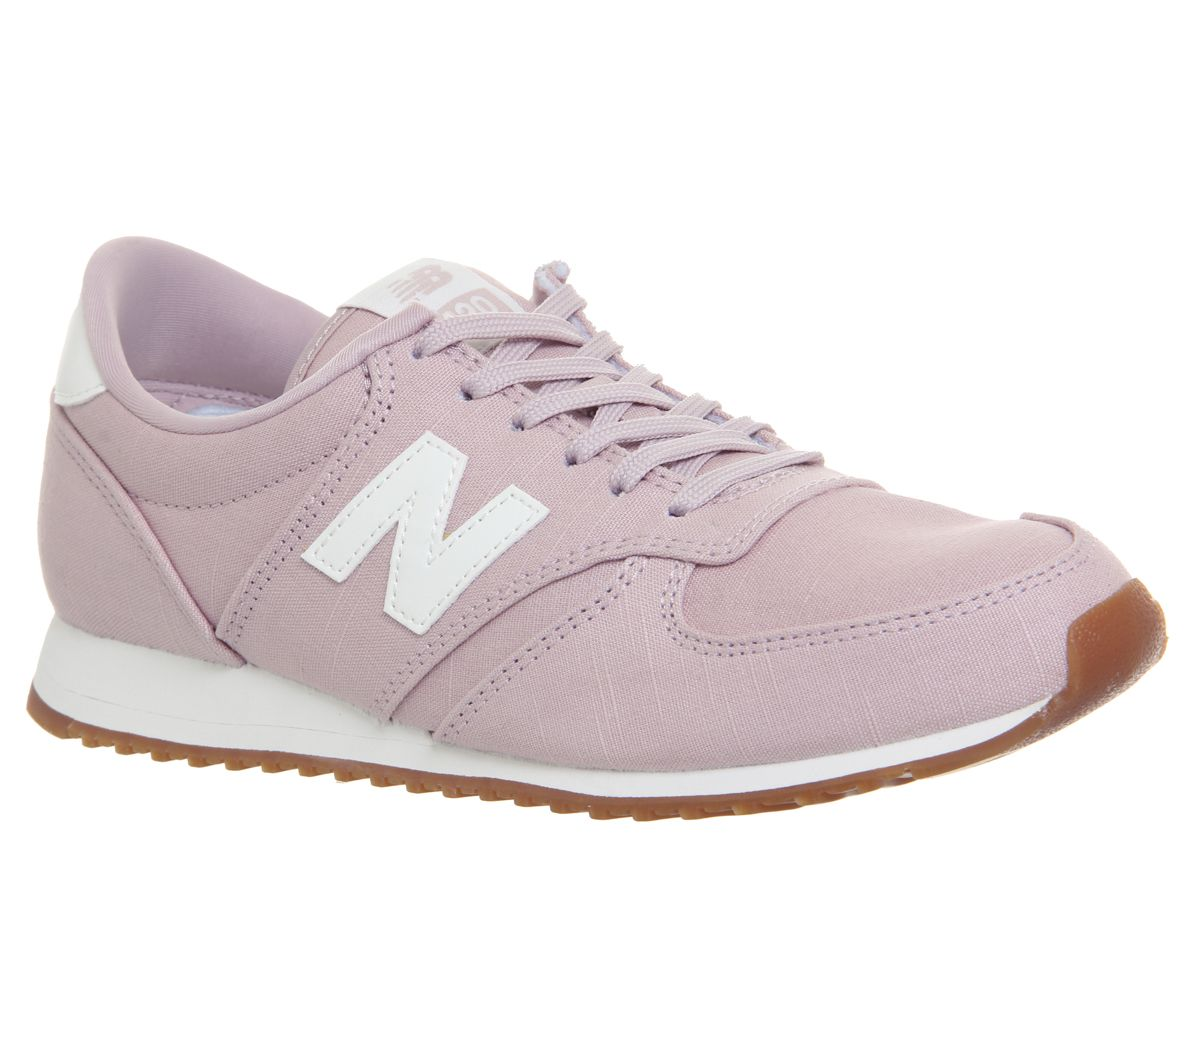 cf4fd0e8fa49 New Balance 420 Trainers Faded Rose - Hers trainers